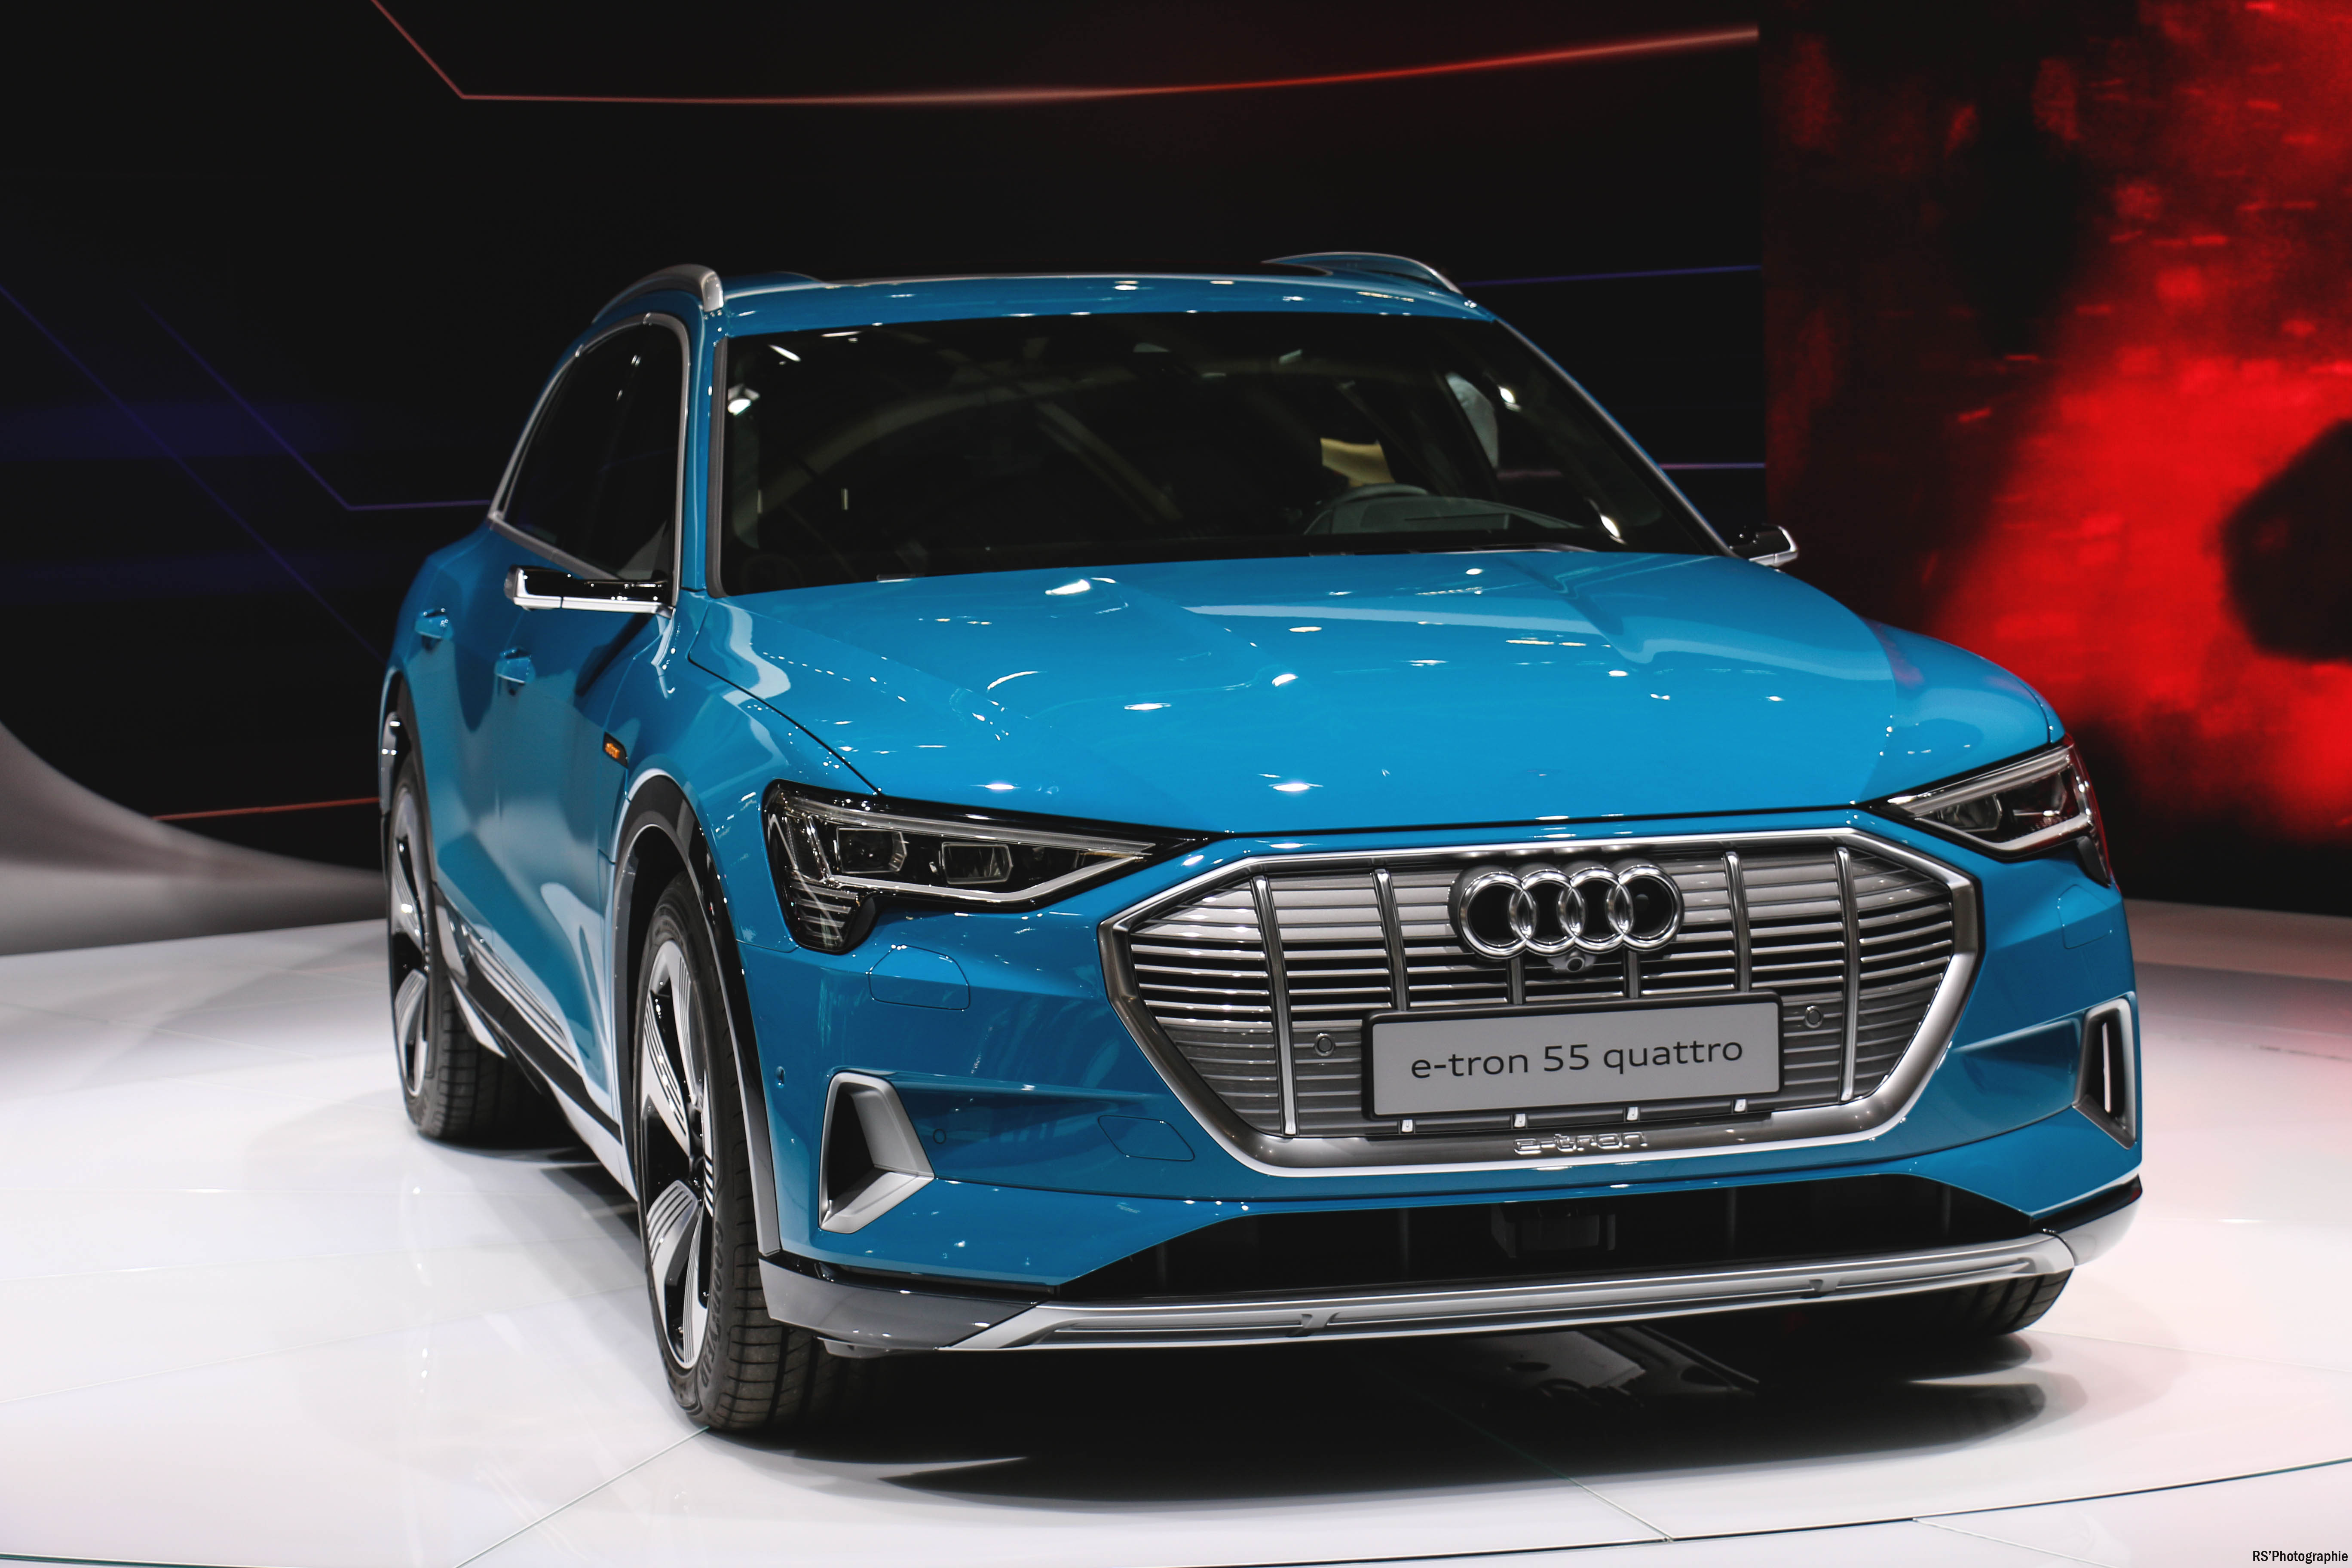 Audi e-tron quattro - front - Paris Motor Show - 2018 - Mondial Auto - photo by Arnaud Demasier RS Photographie